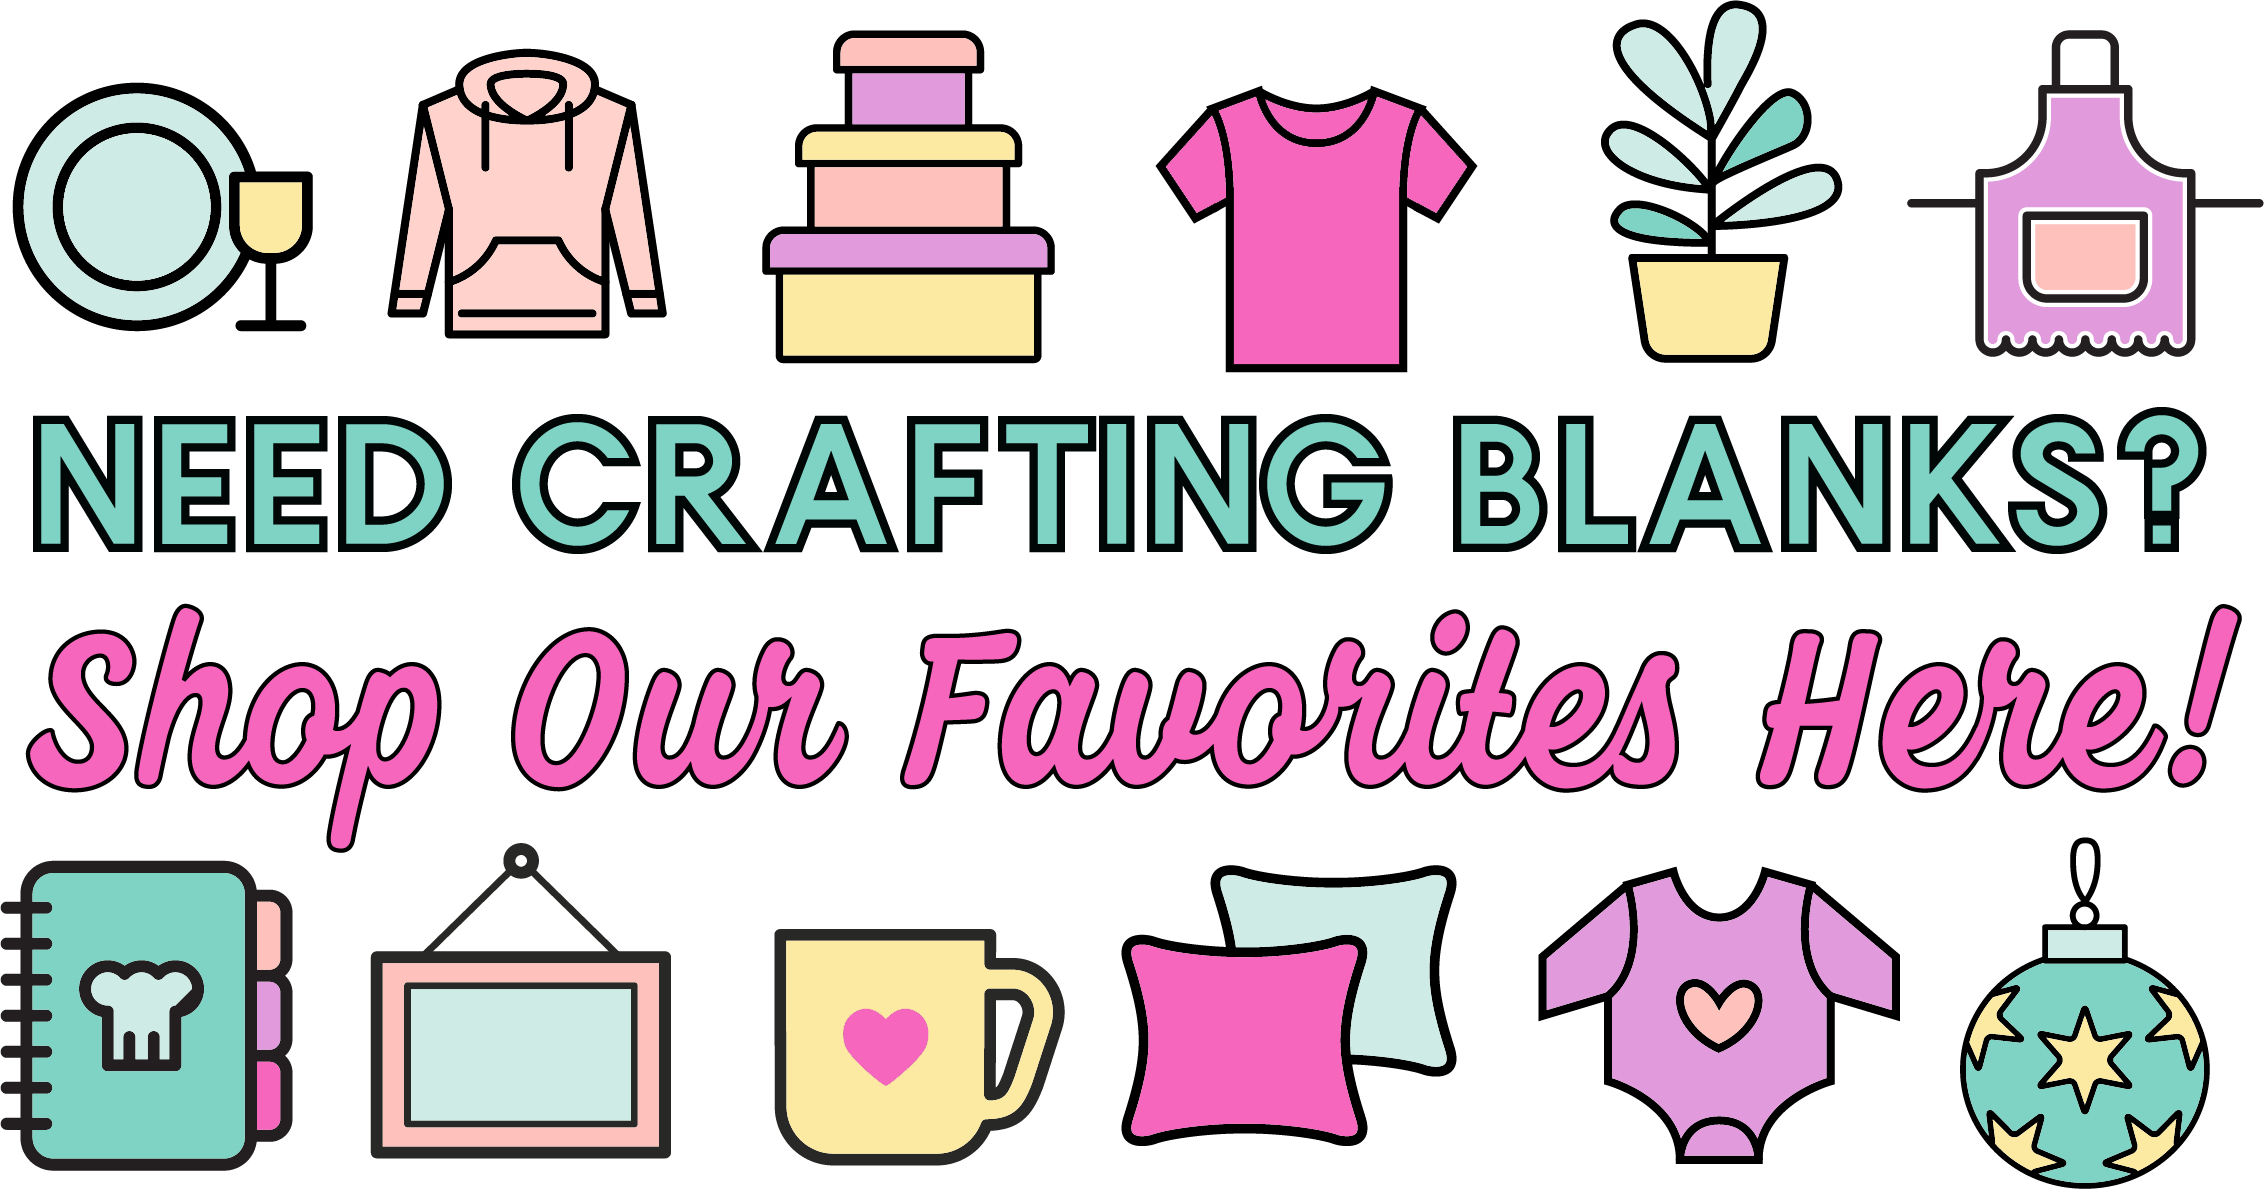 Shop for Craft Blanks Here - decorative image of blank crafting supplies